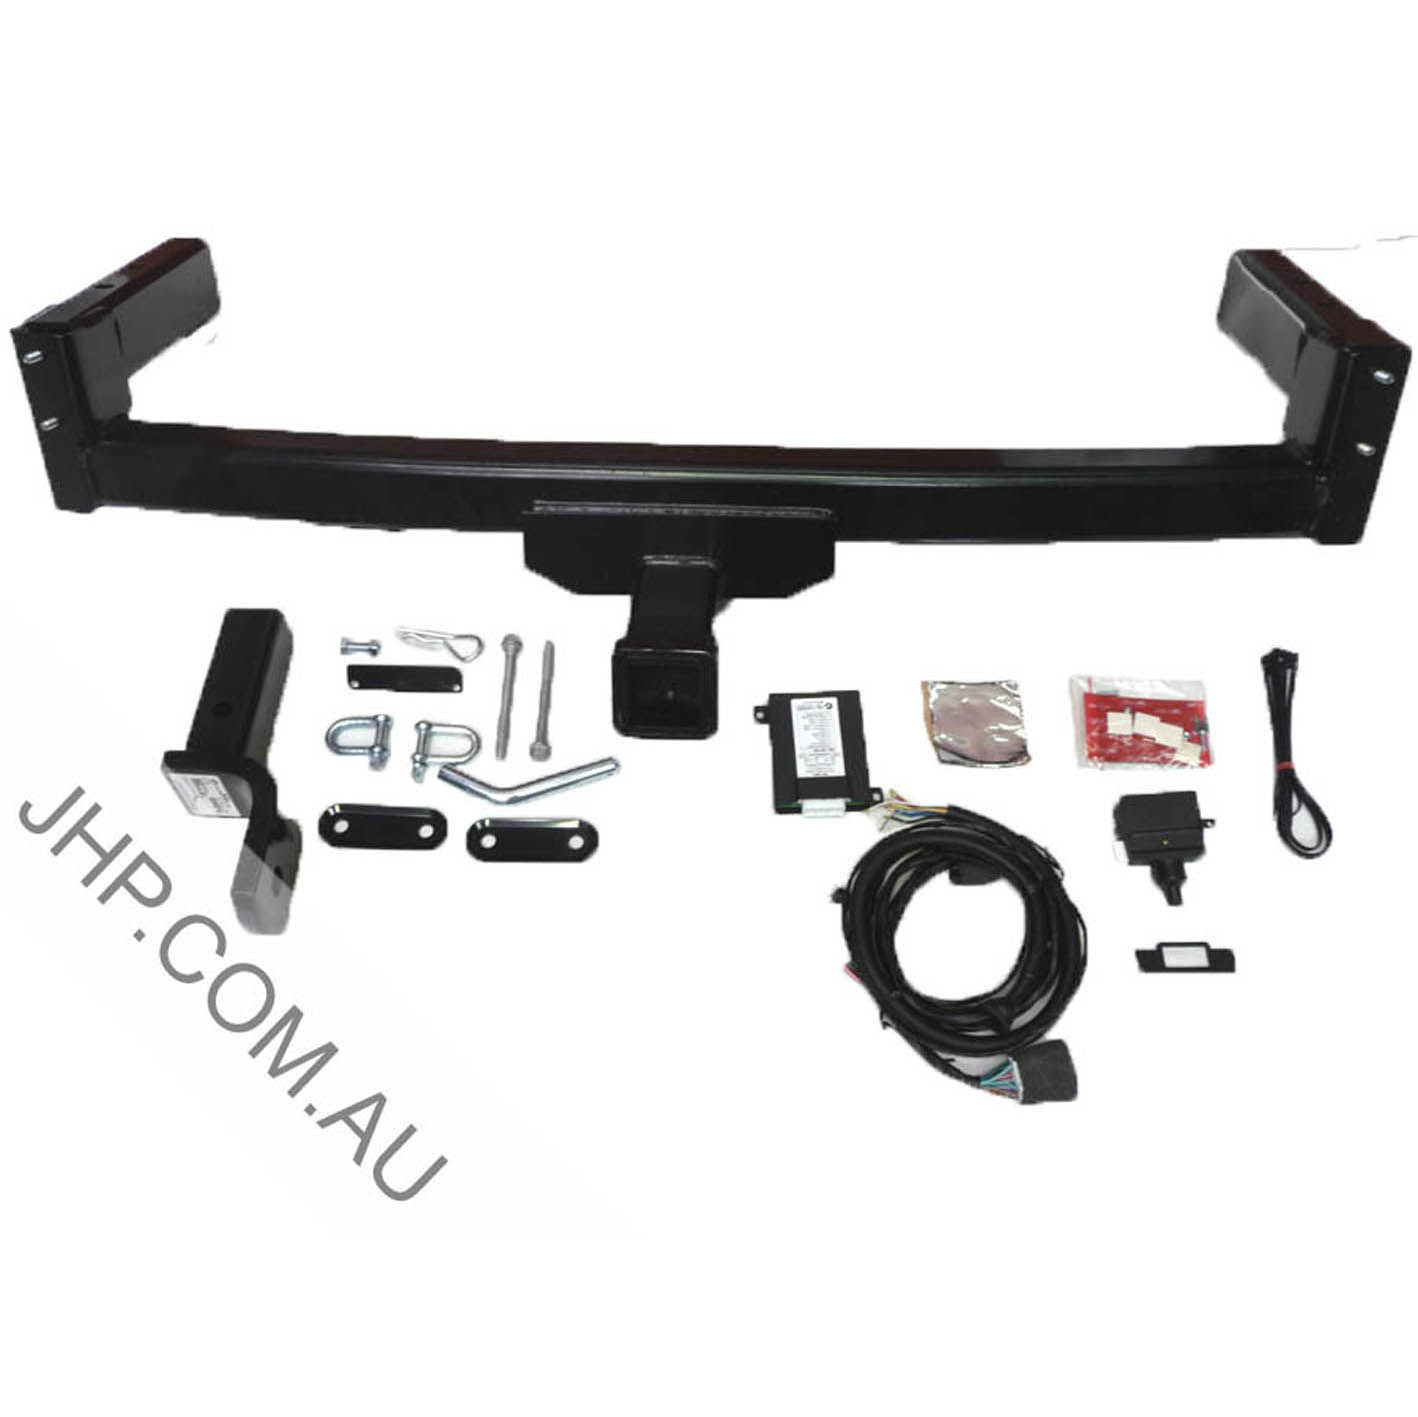 Genuine Gm Holden Commodore Ve Tow Bar Kit With Harness | Jhp - Ve Commodore Trailer Wiring Diagram